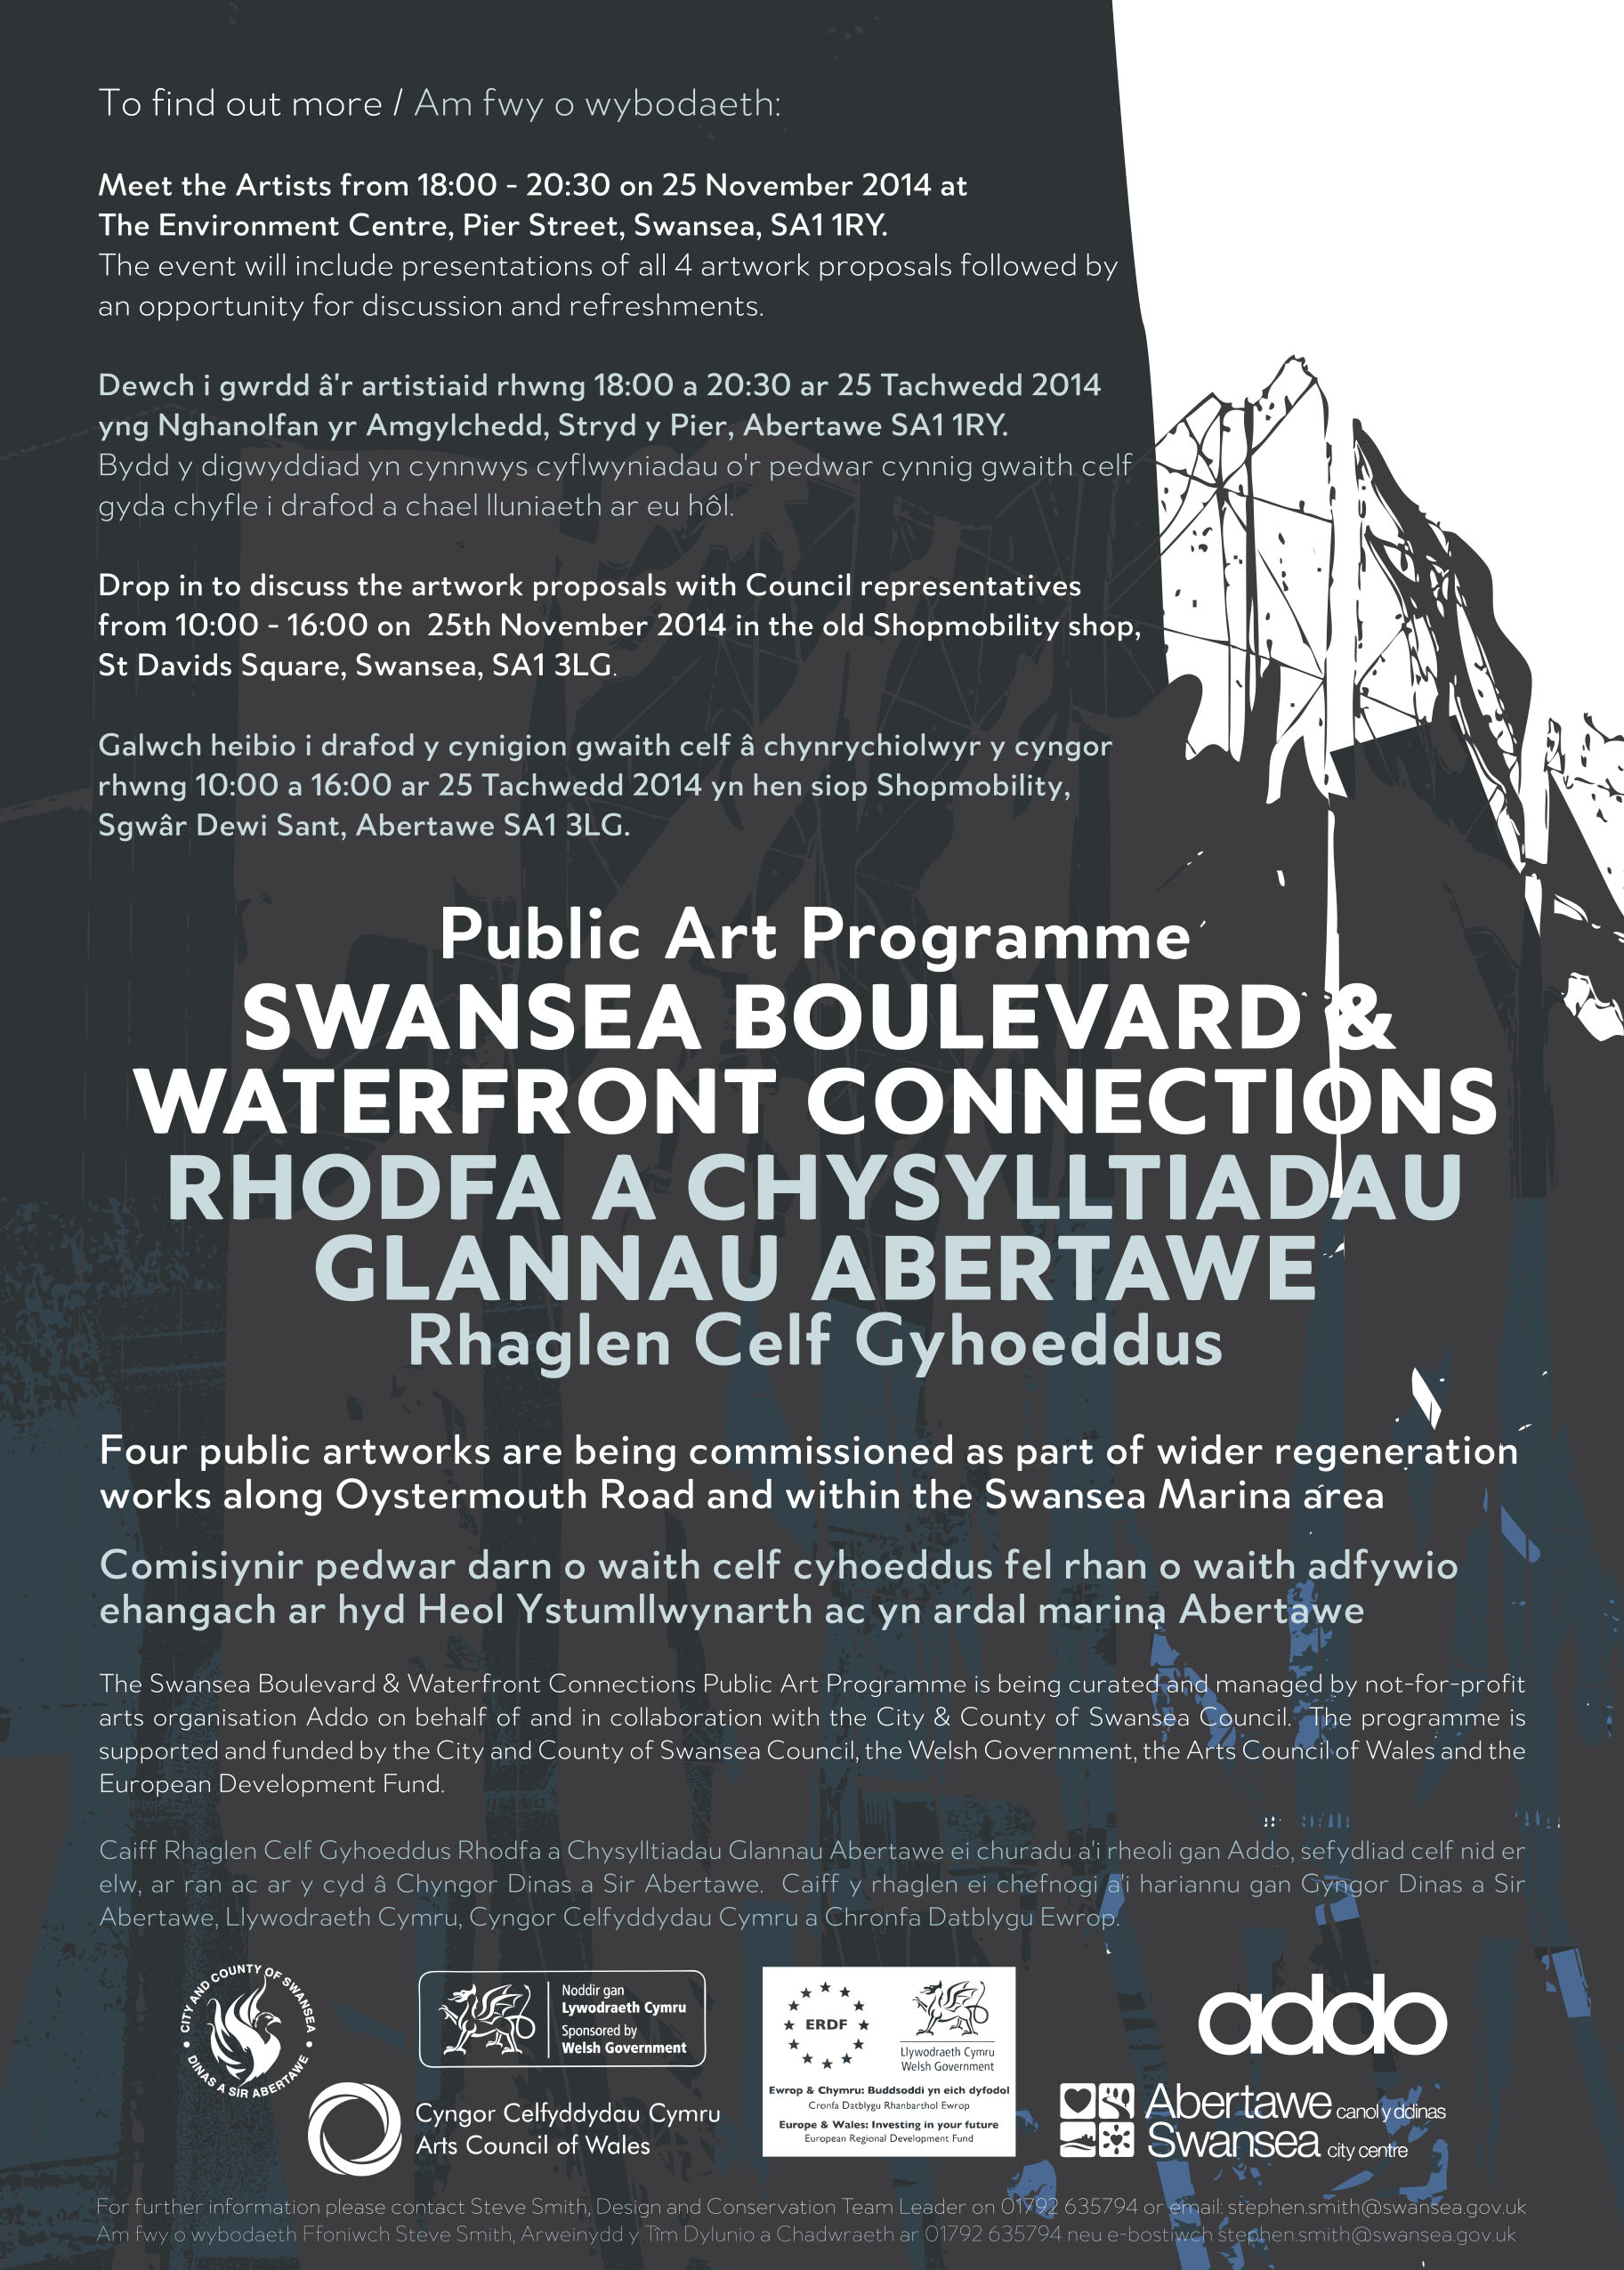 Find out more about the Swansea Boulevard & Waterfront Connections Public Artworks